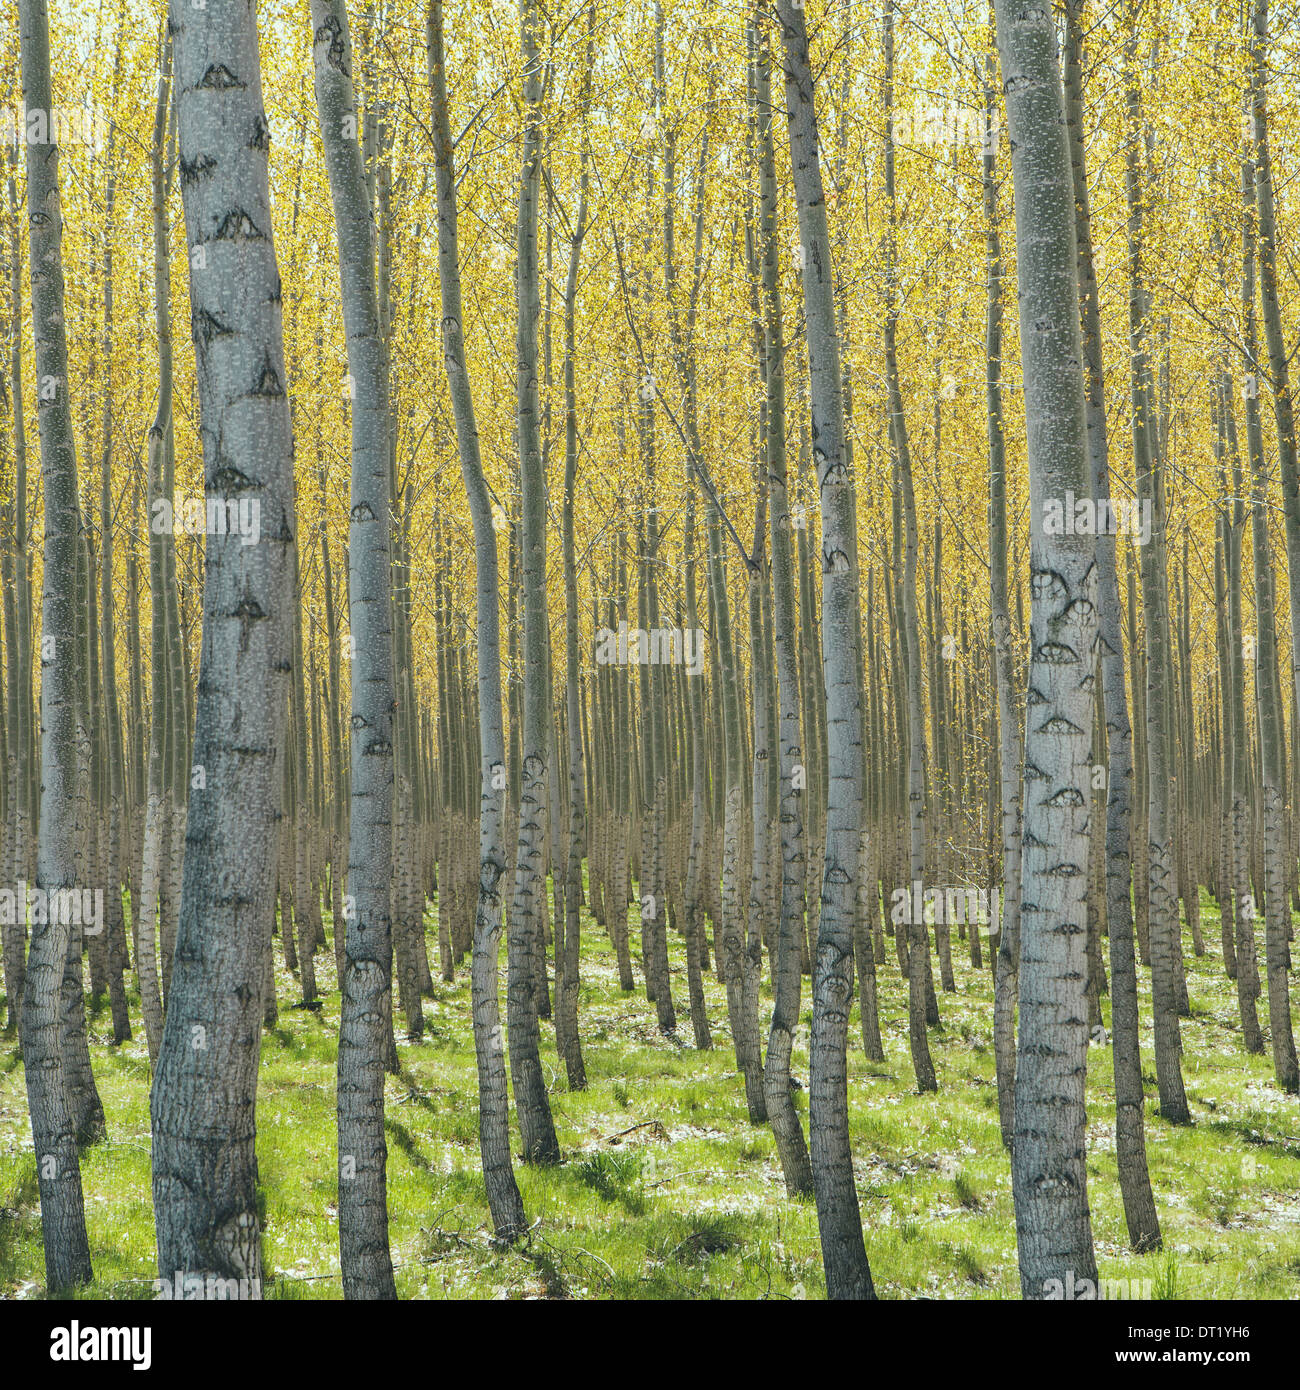 Rows of commercially grown poplar trees on a tree farm near Pendleton Oregon Pale bark and yellow and green leaves - Stock Image